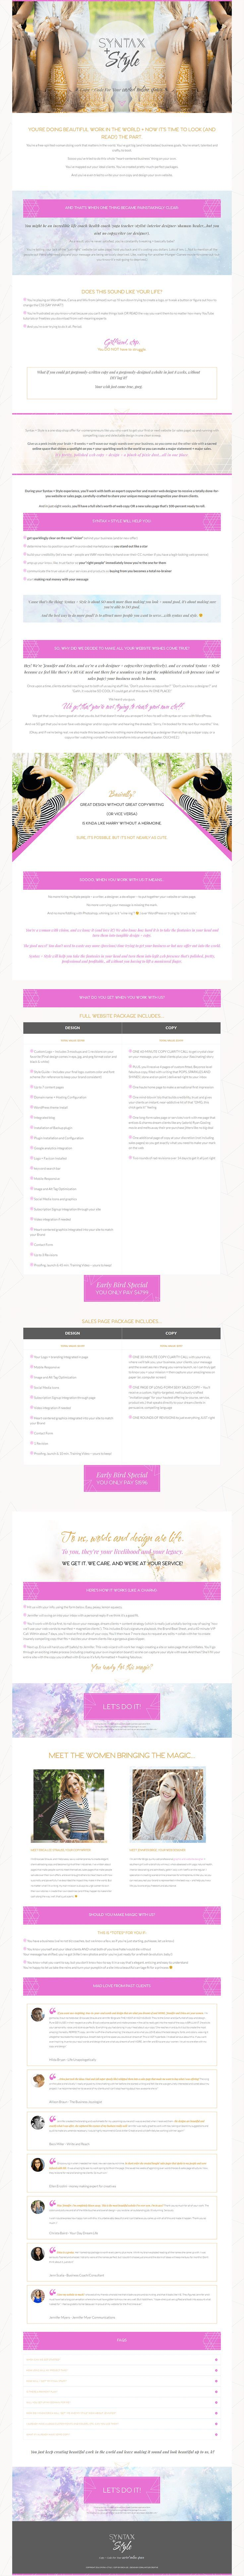 20 best sales page design images on pinterest design websites sales page inspiration syntax and style by coral antler creative fandeluxe Image collections